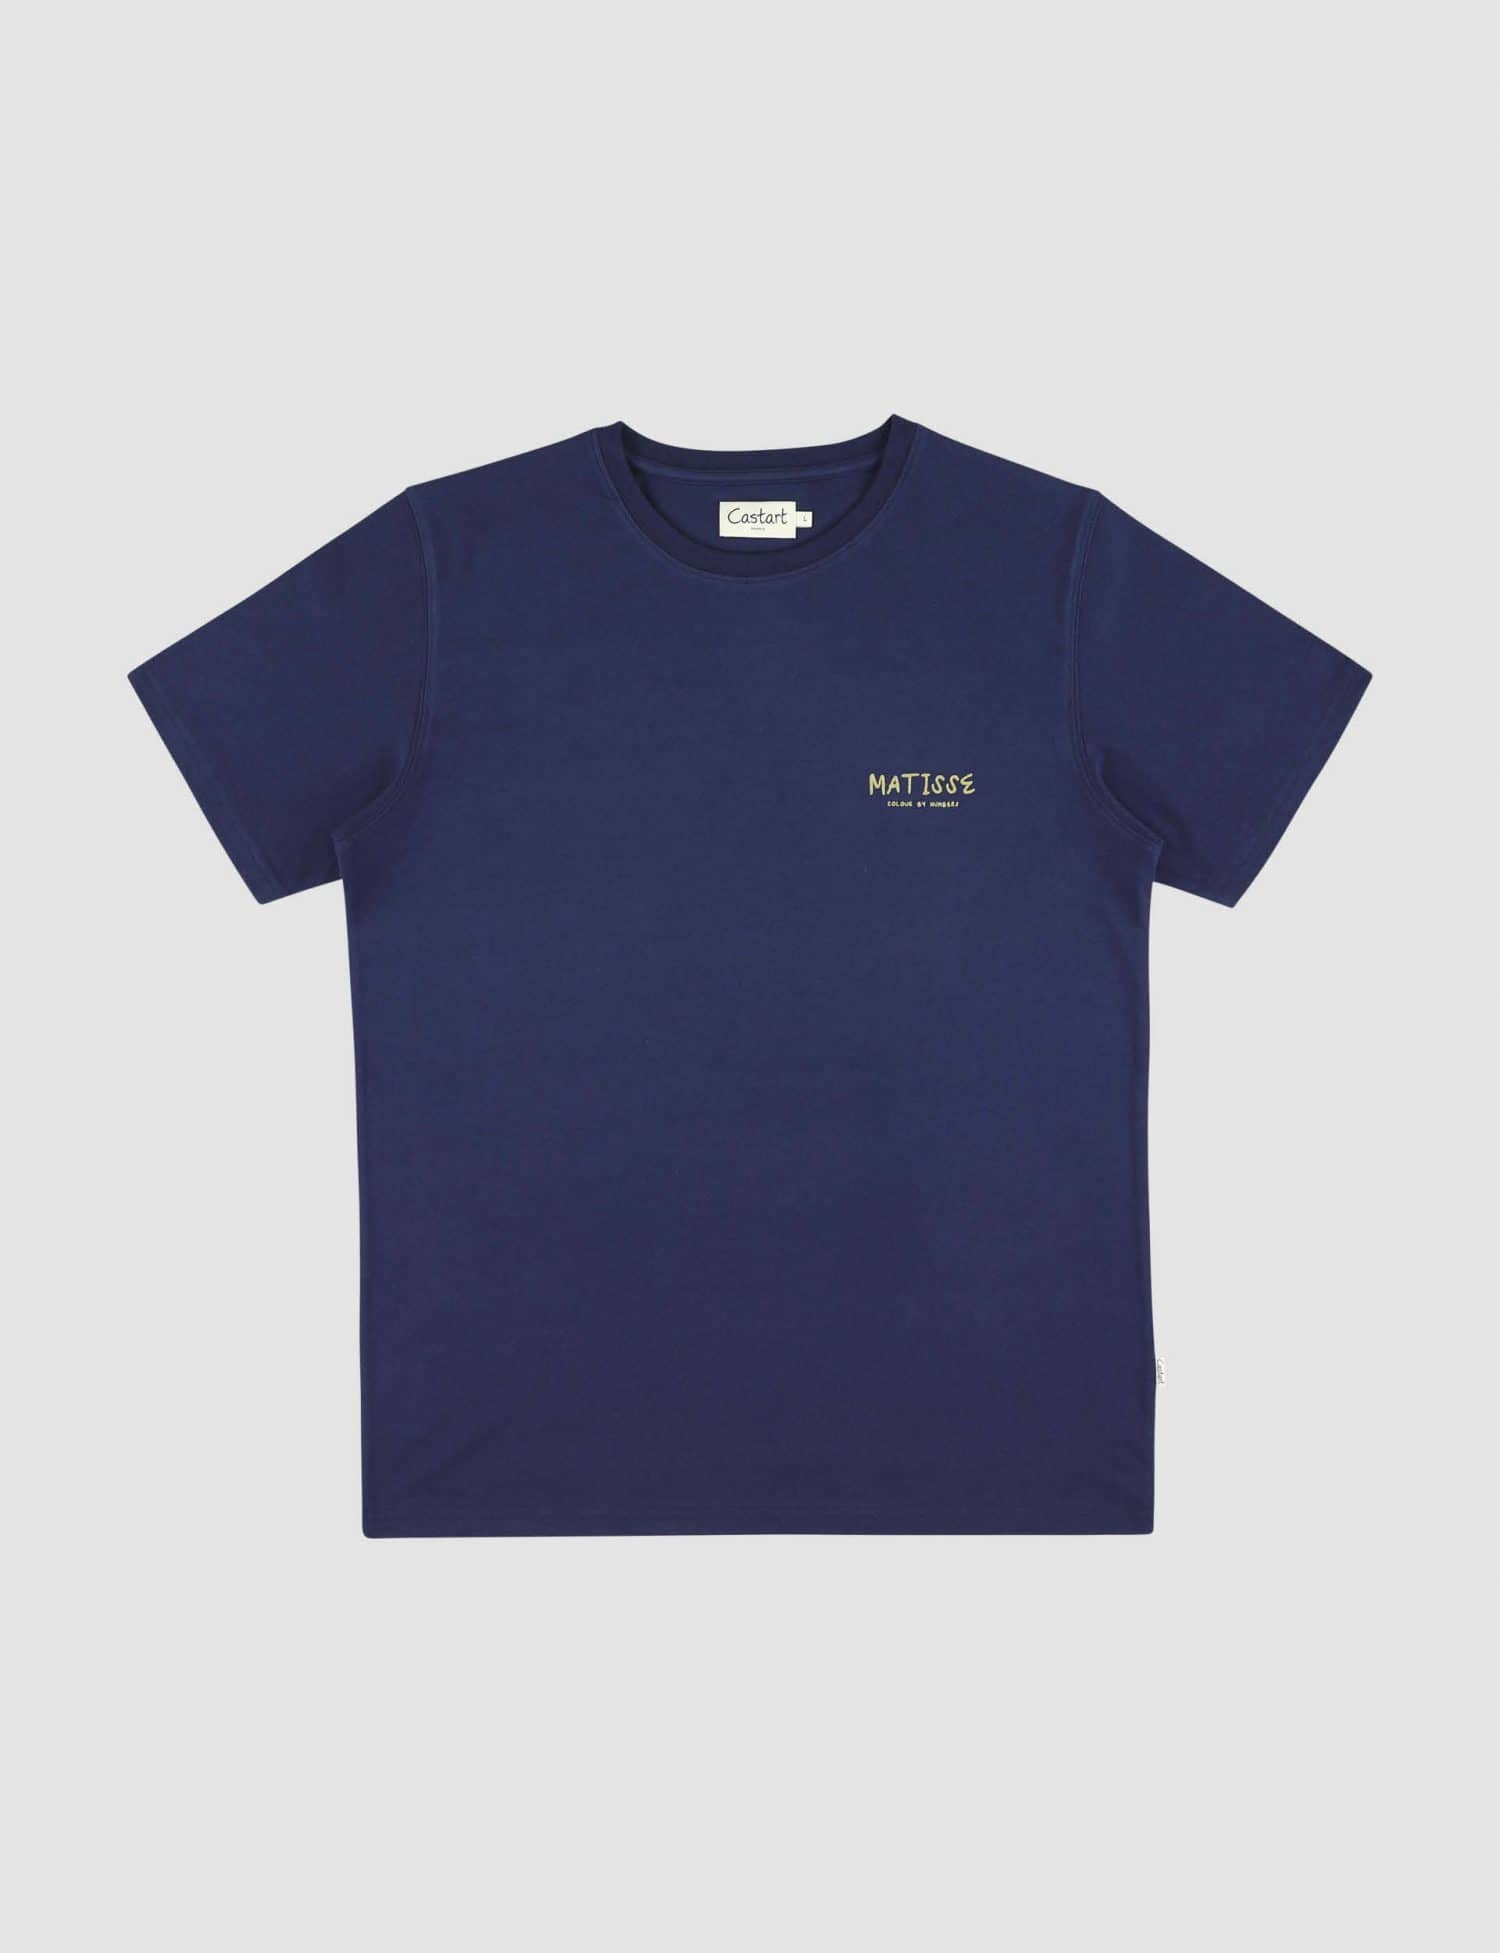 Matisse - Navy Blue